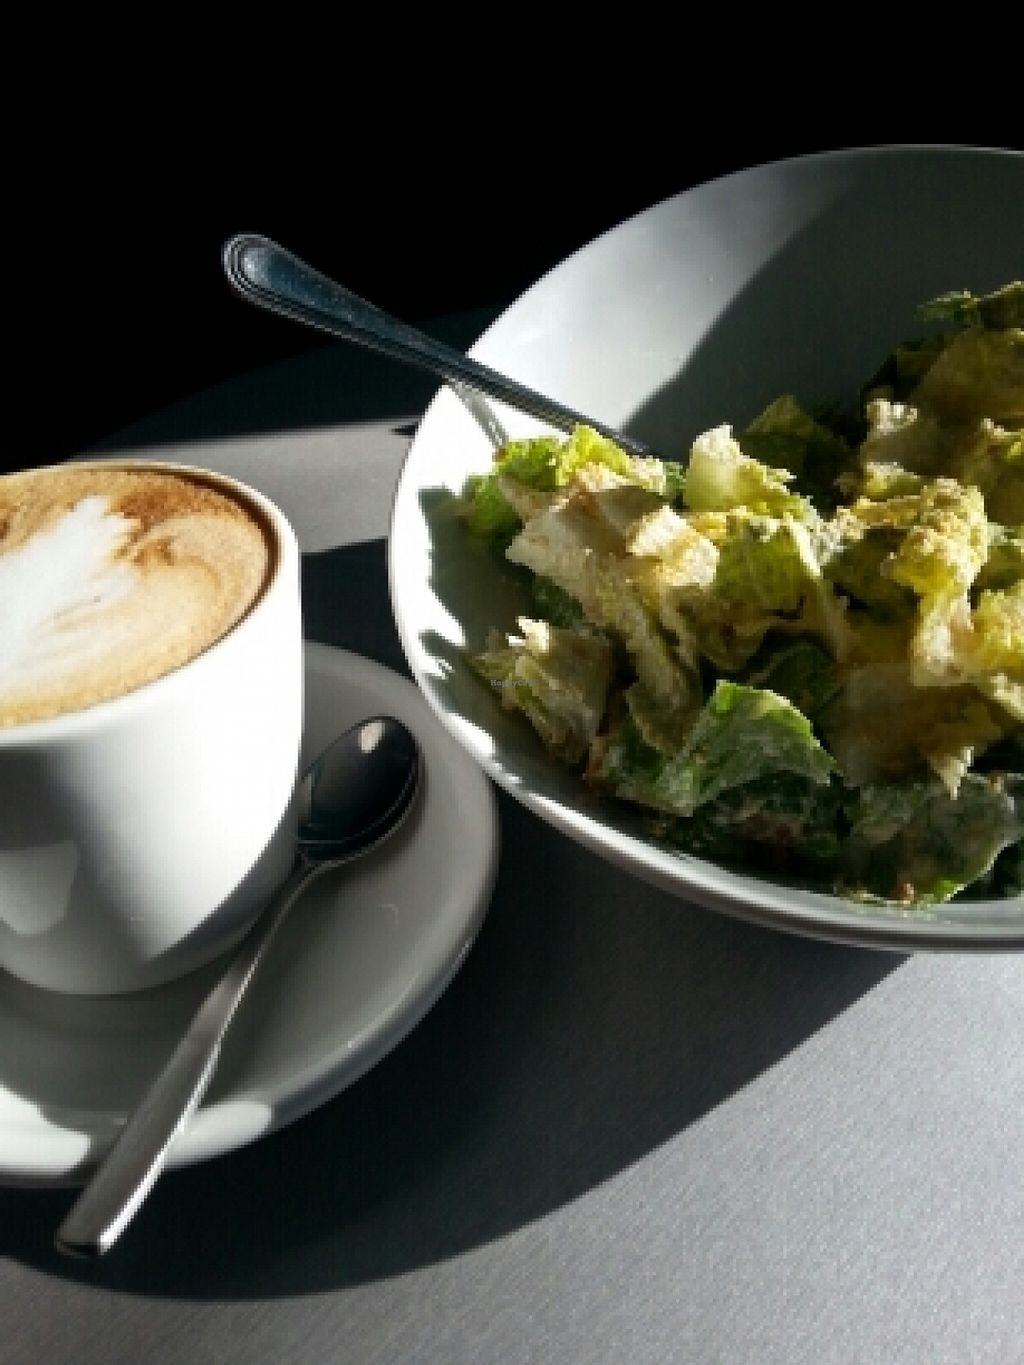 """Photo of CLOSED: Venosa Cafe  by <a href=""""/members/profile/Sunshine2366"""">Sunshine2366</a> <br/>Caesar salad and Almond milk latte...yummy! <br/> January 21, 2016  - <a href='/contact/abuse/image/58382/133237'>Report</a>"""